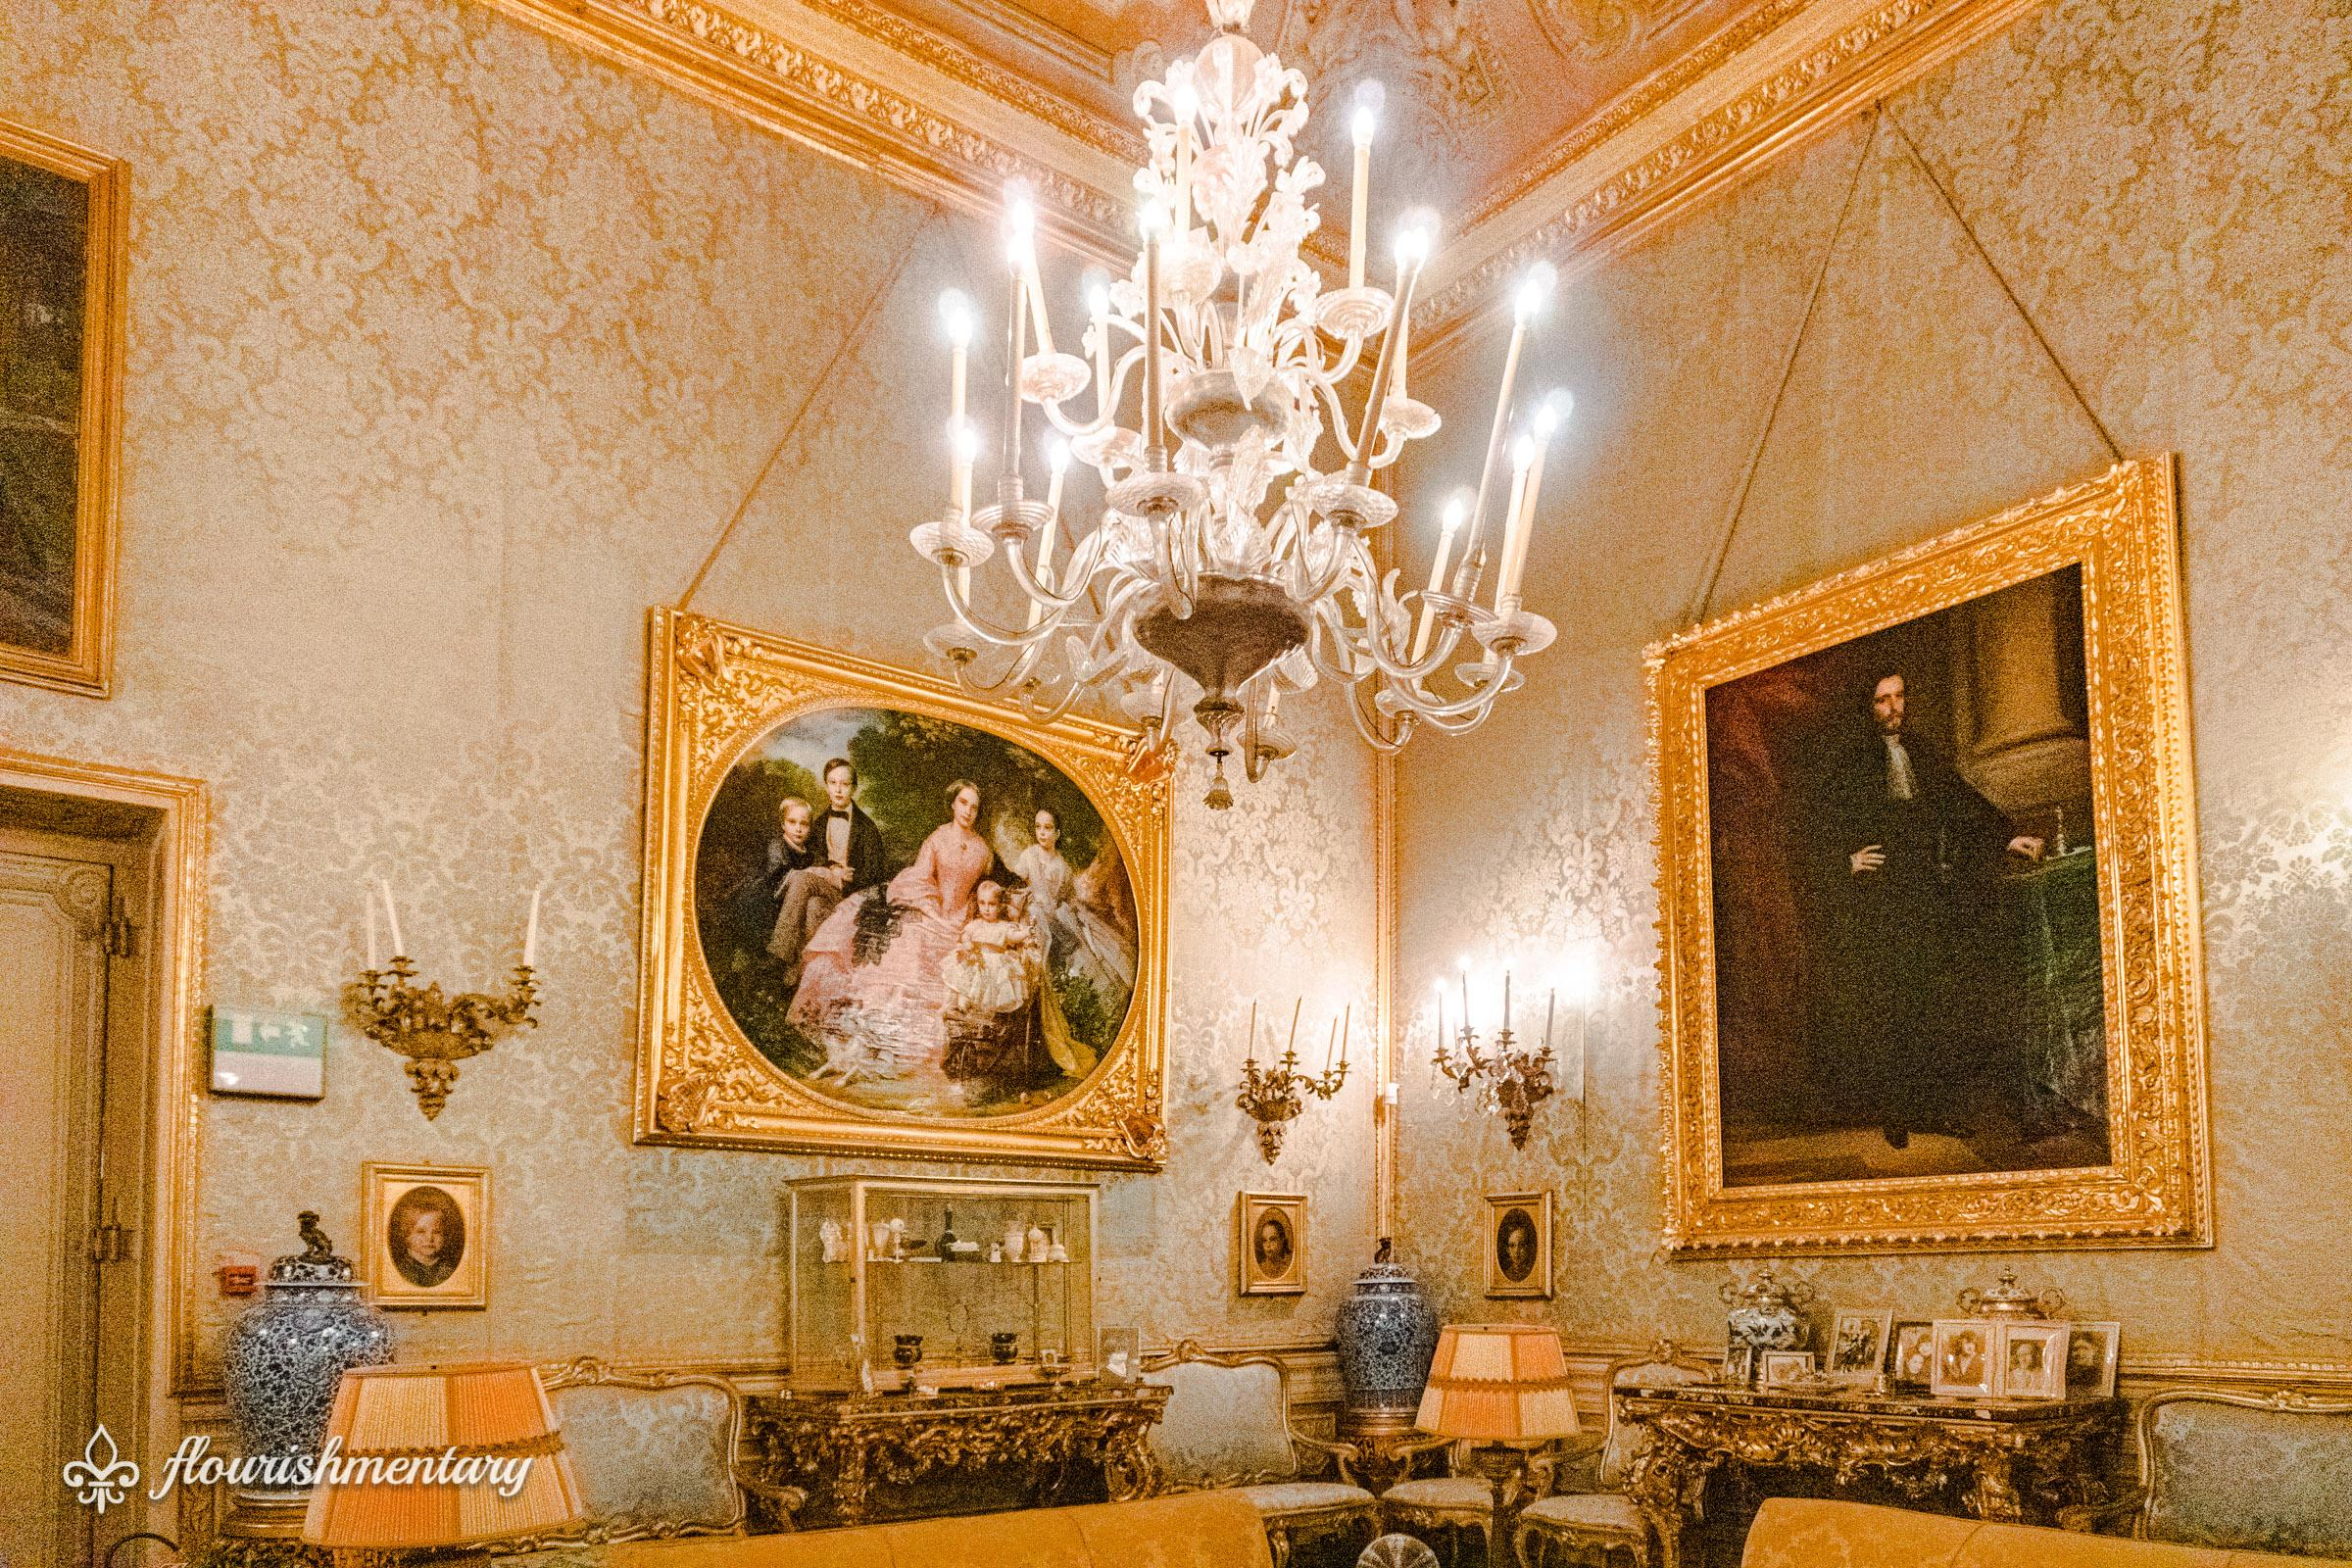 The Blue Room galleria doria pamphilj